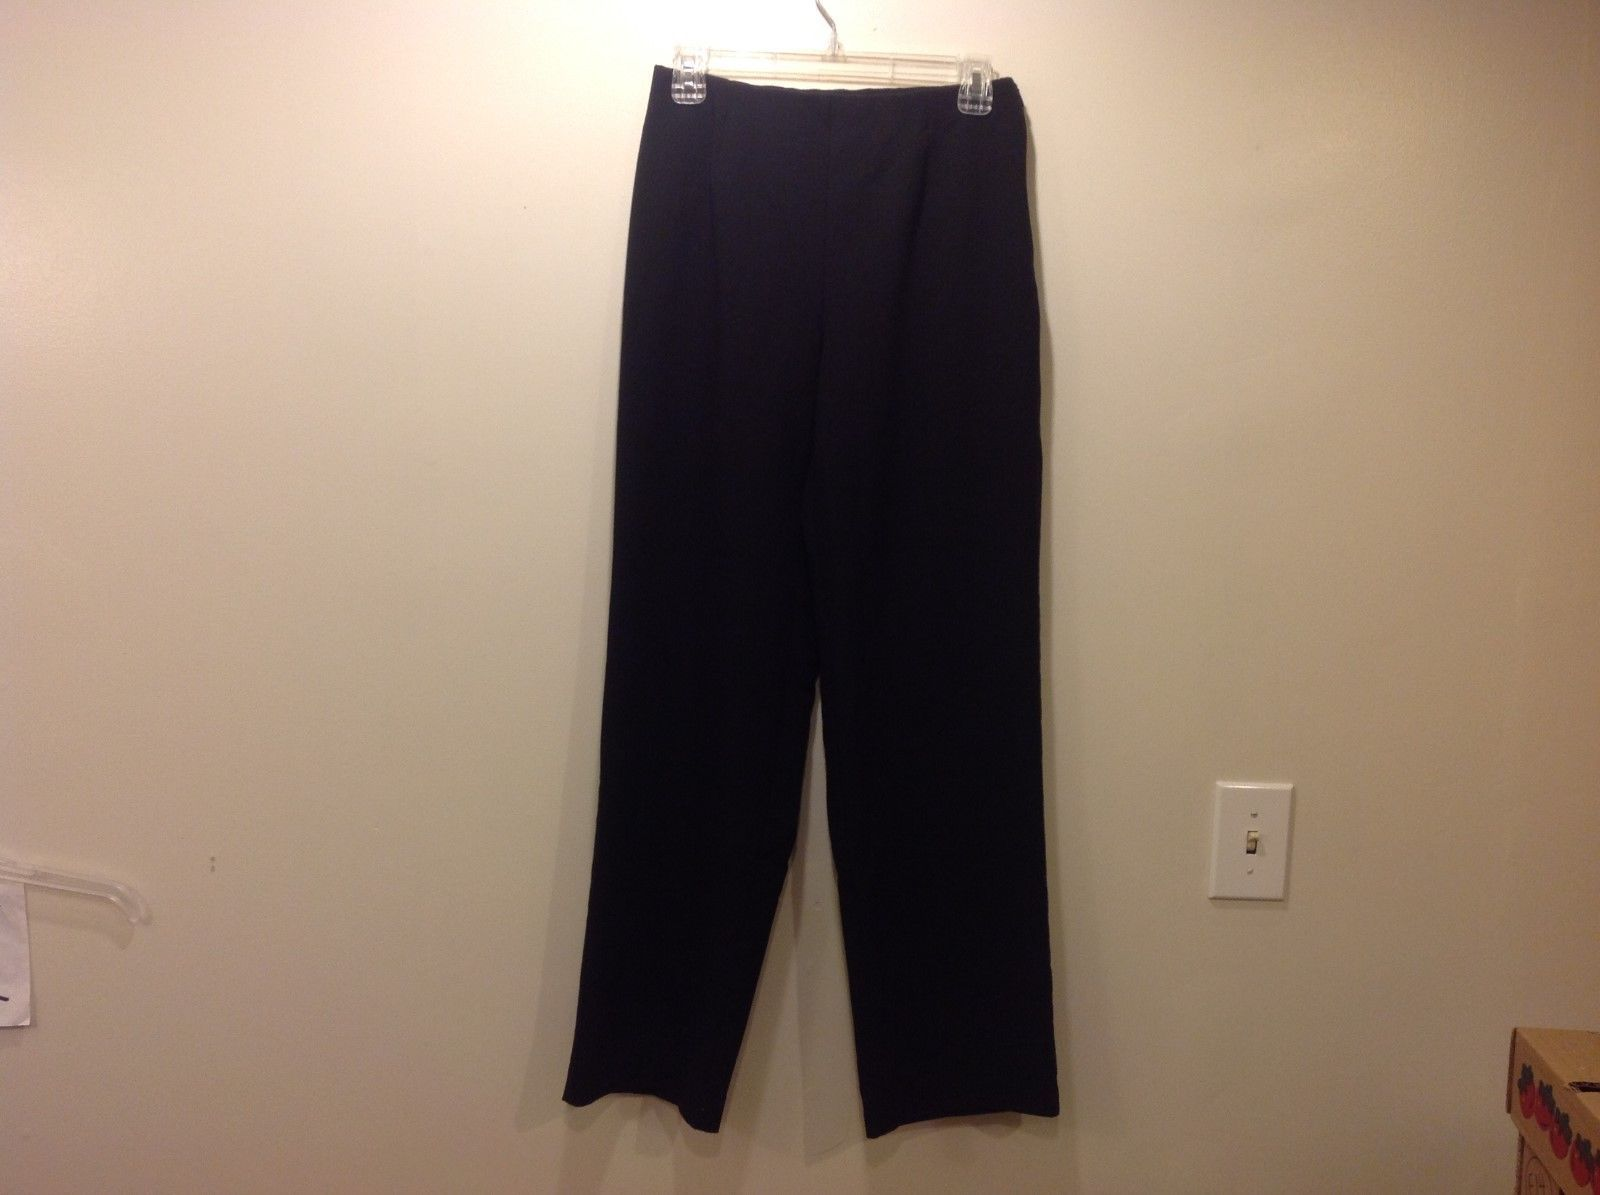 Coldwater Creek Classic Fit Sleek Black Dress Pants Sz 6